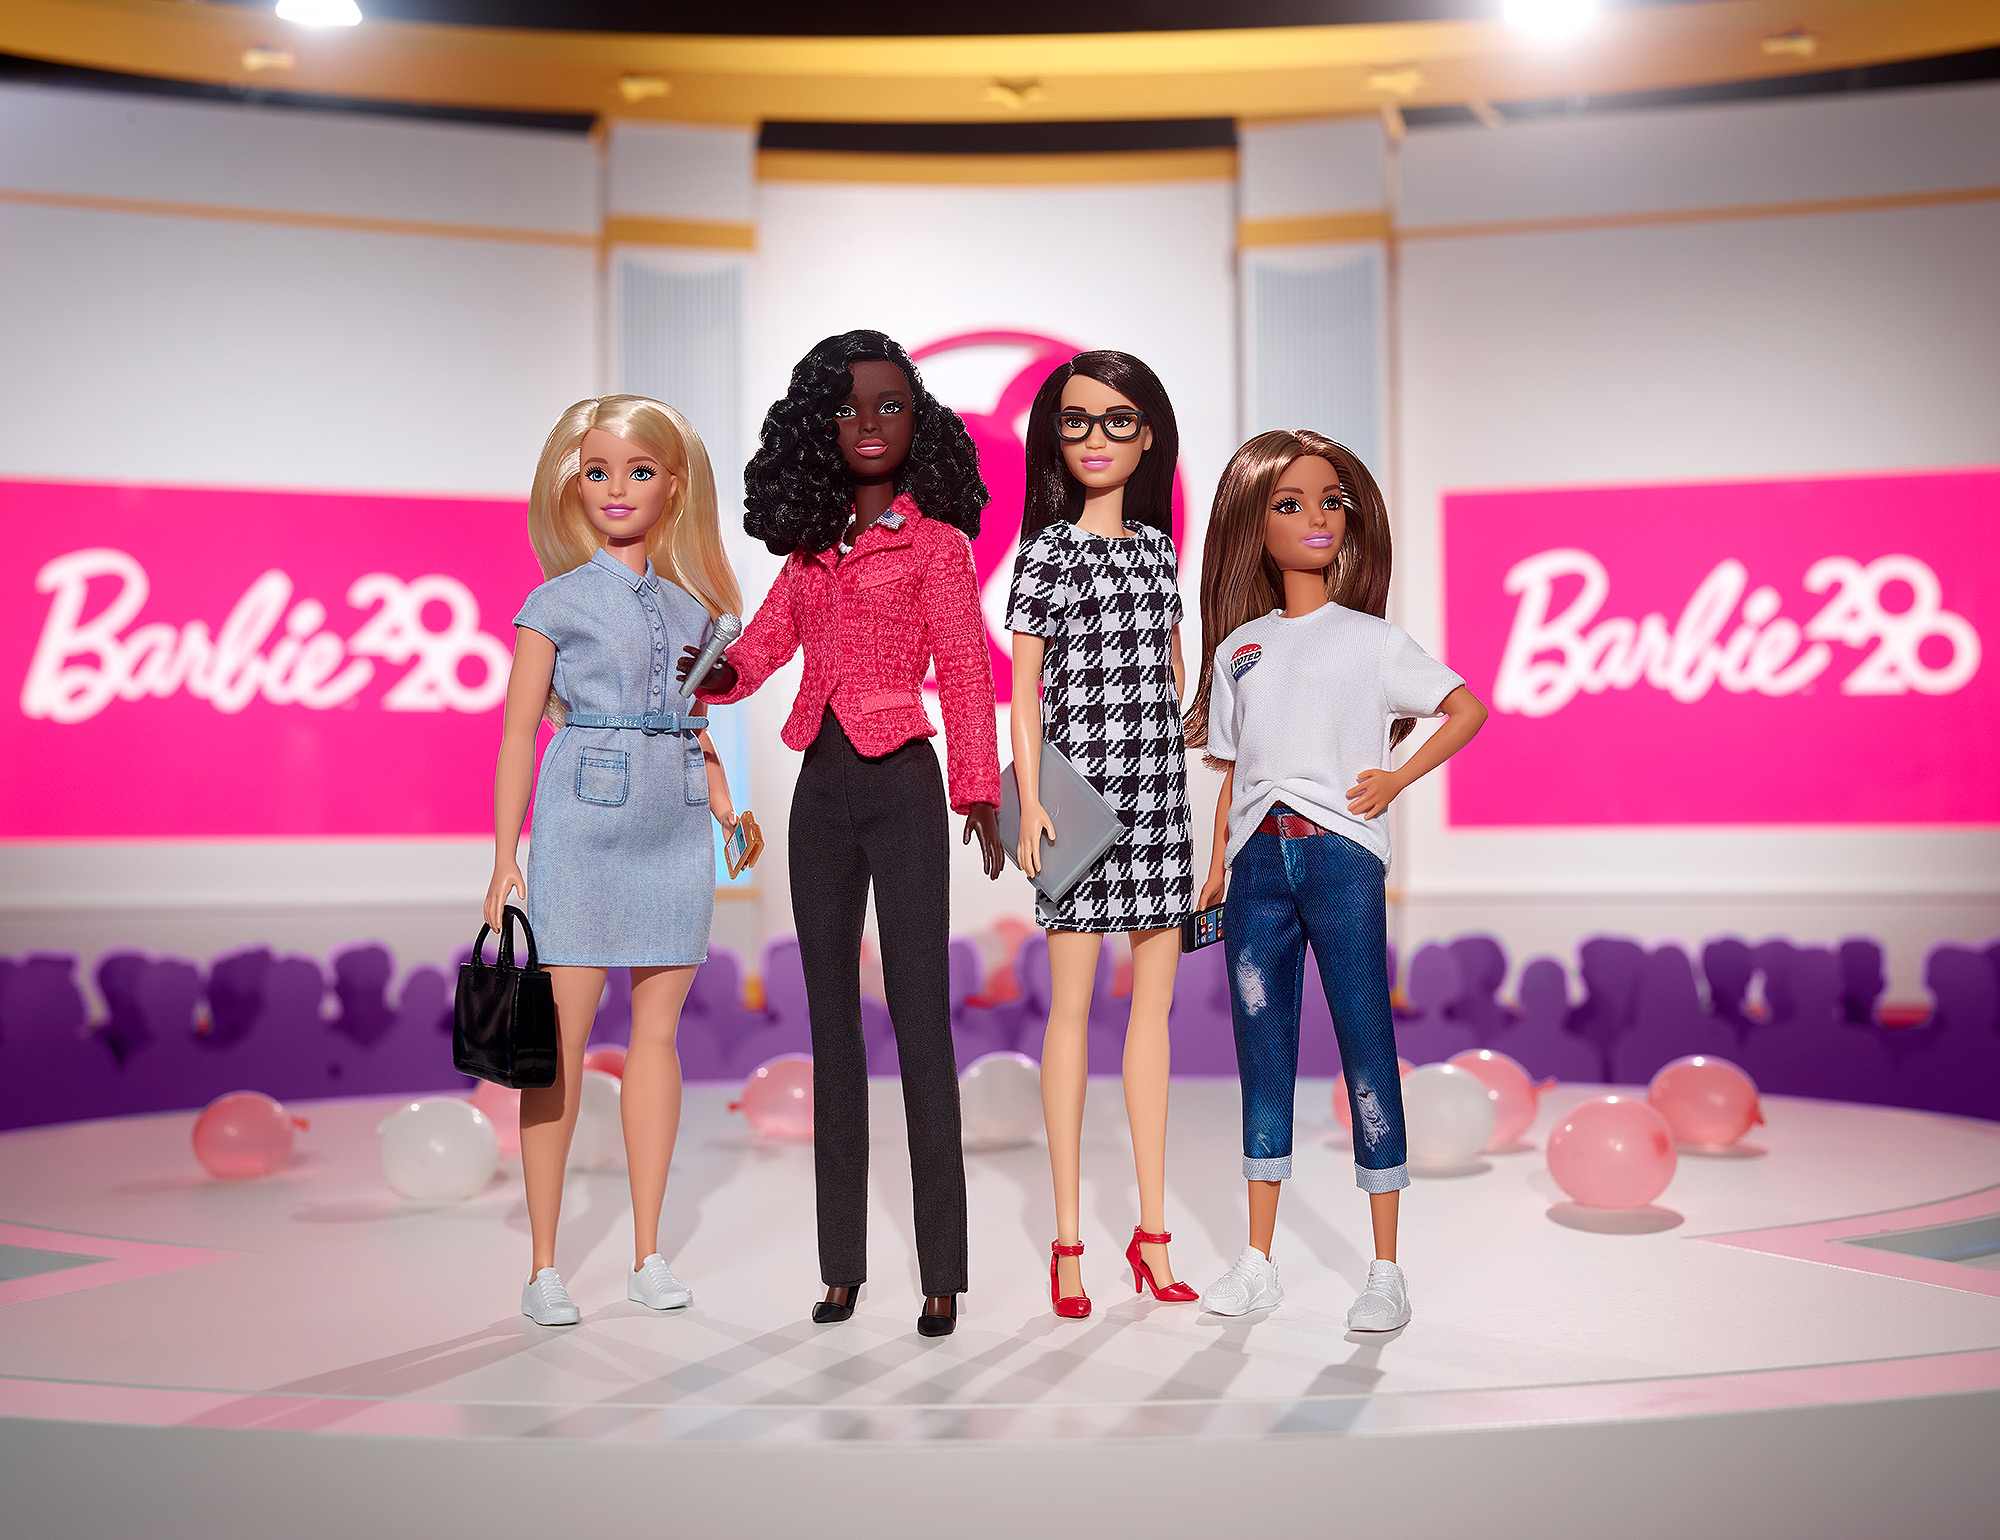 Barbie Unveils Collection of Politically-Inspired Dolls, Including Candidate and Voter